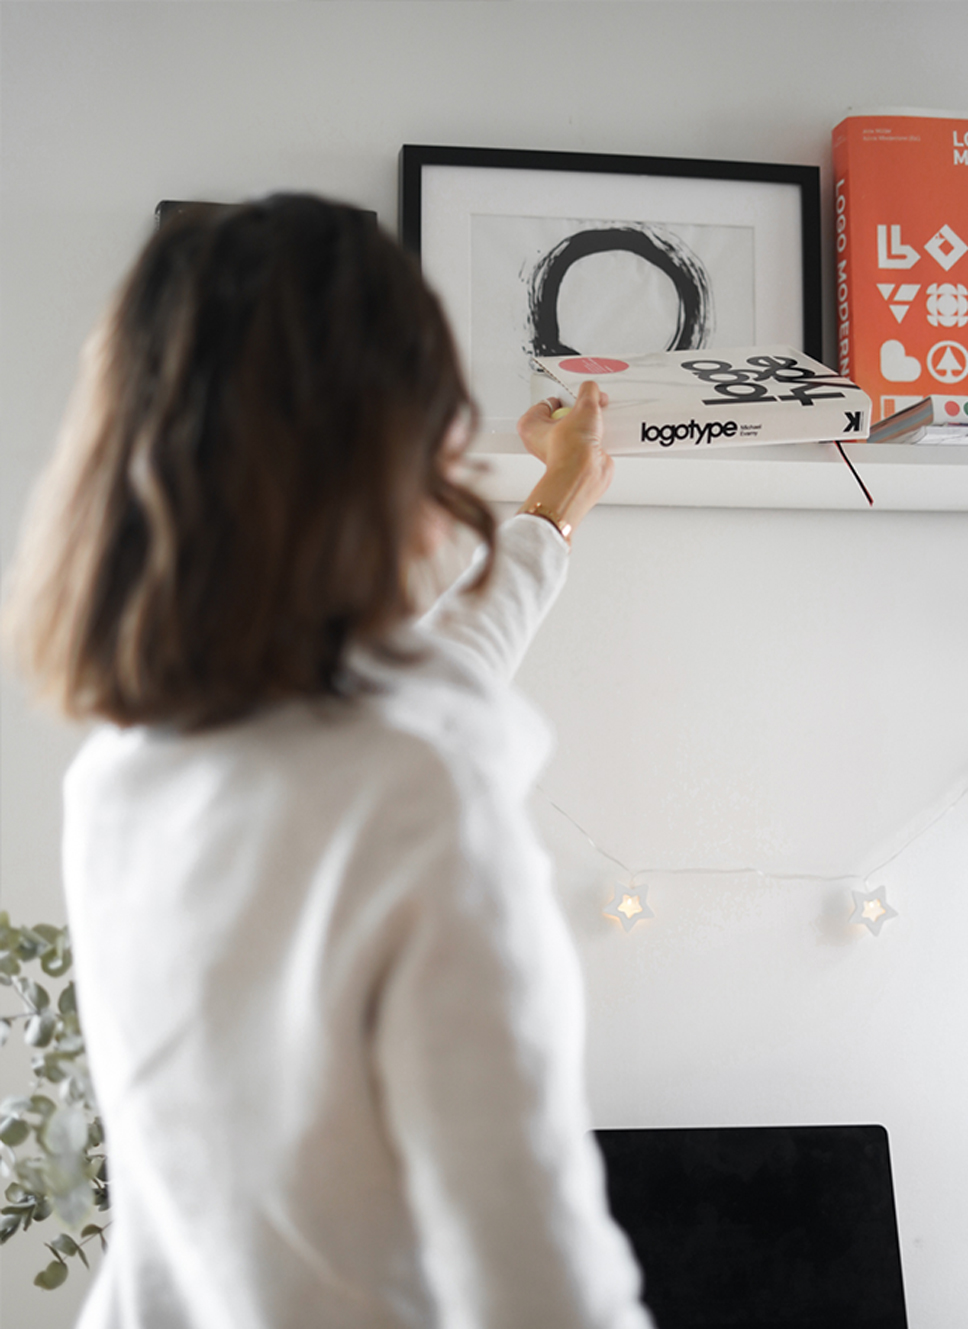 Zoe, the owner of Studio Zo, placing the Logotype book on the shelf in her office.